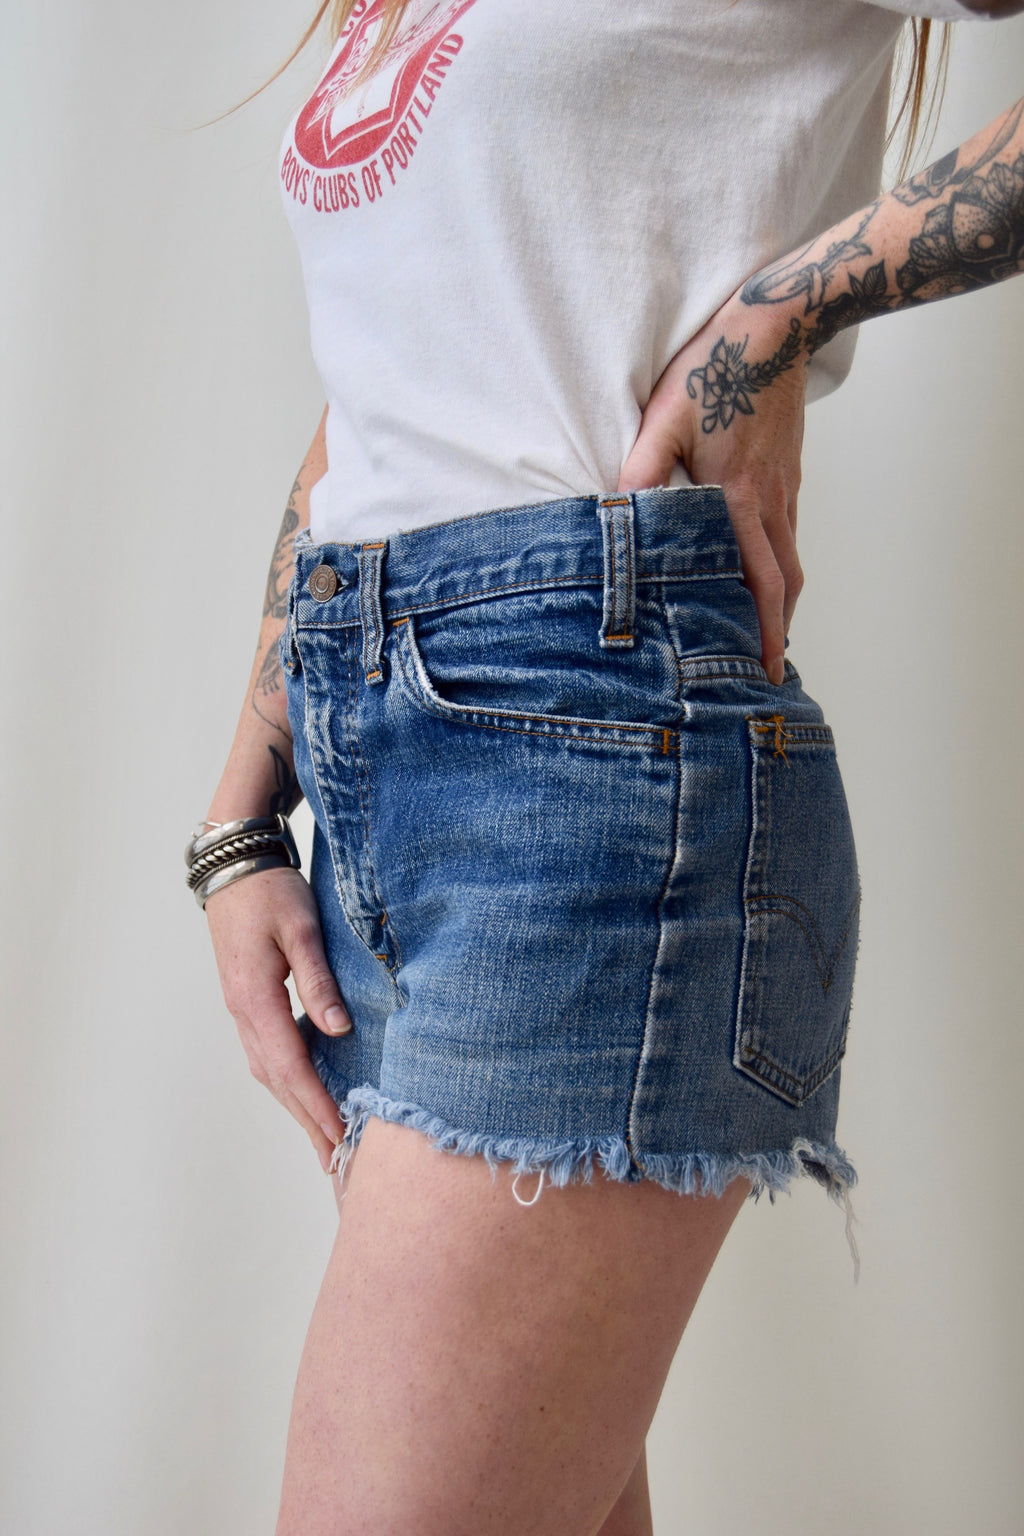 Vintage Levi's Denim Cut Offs